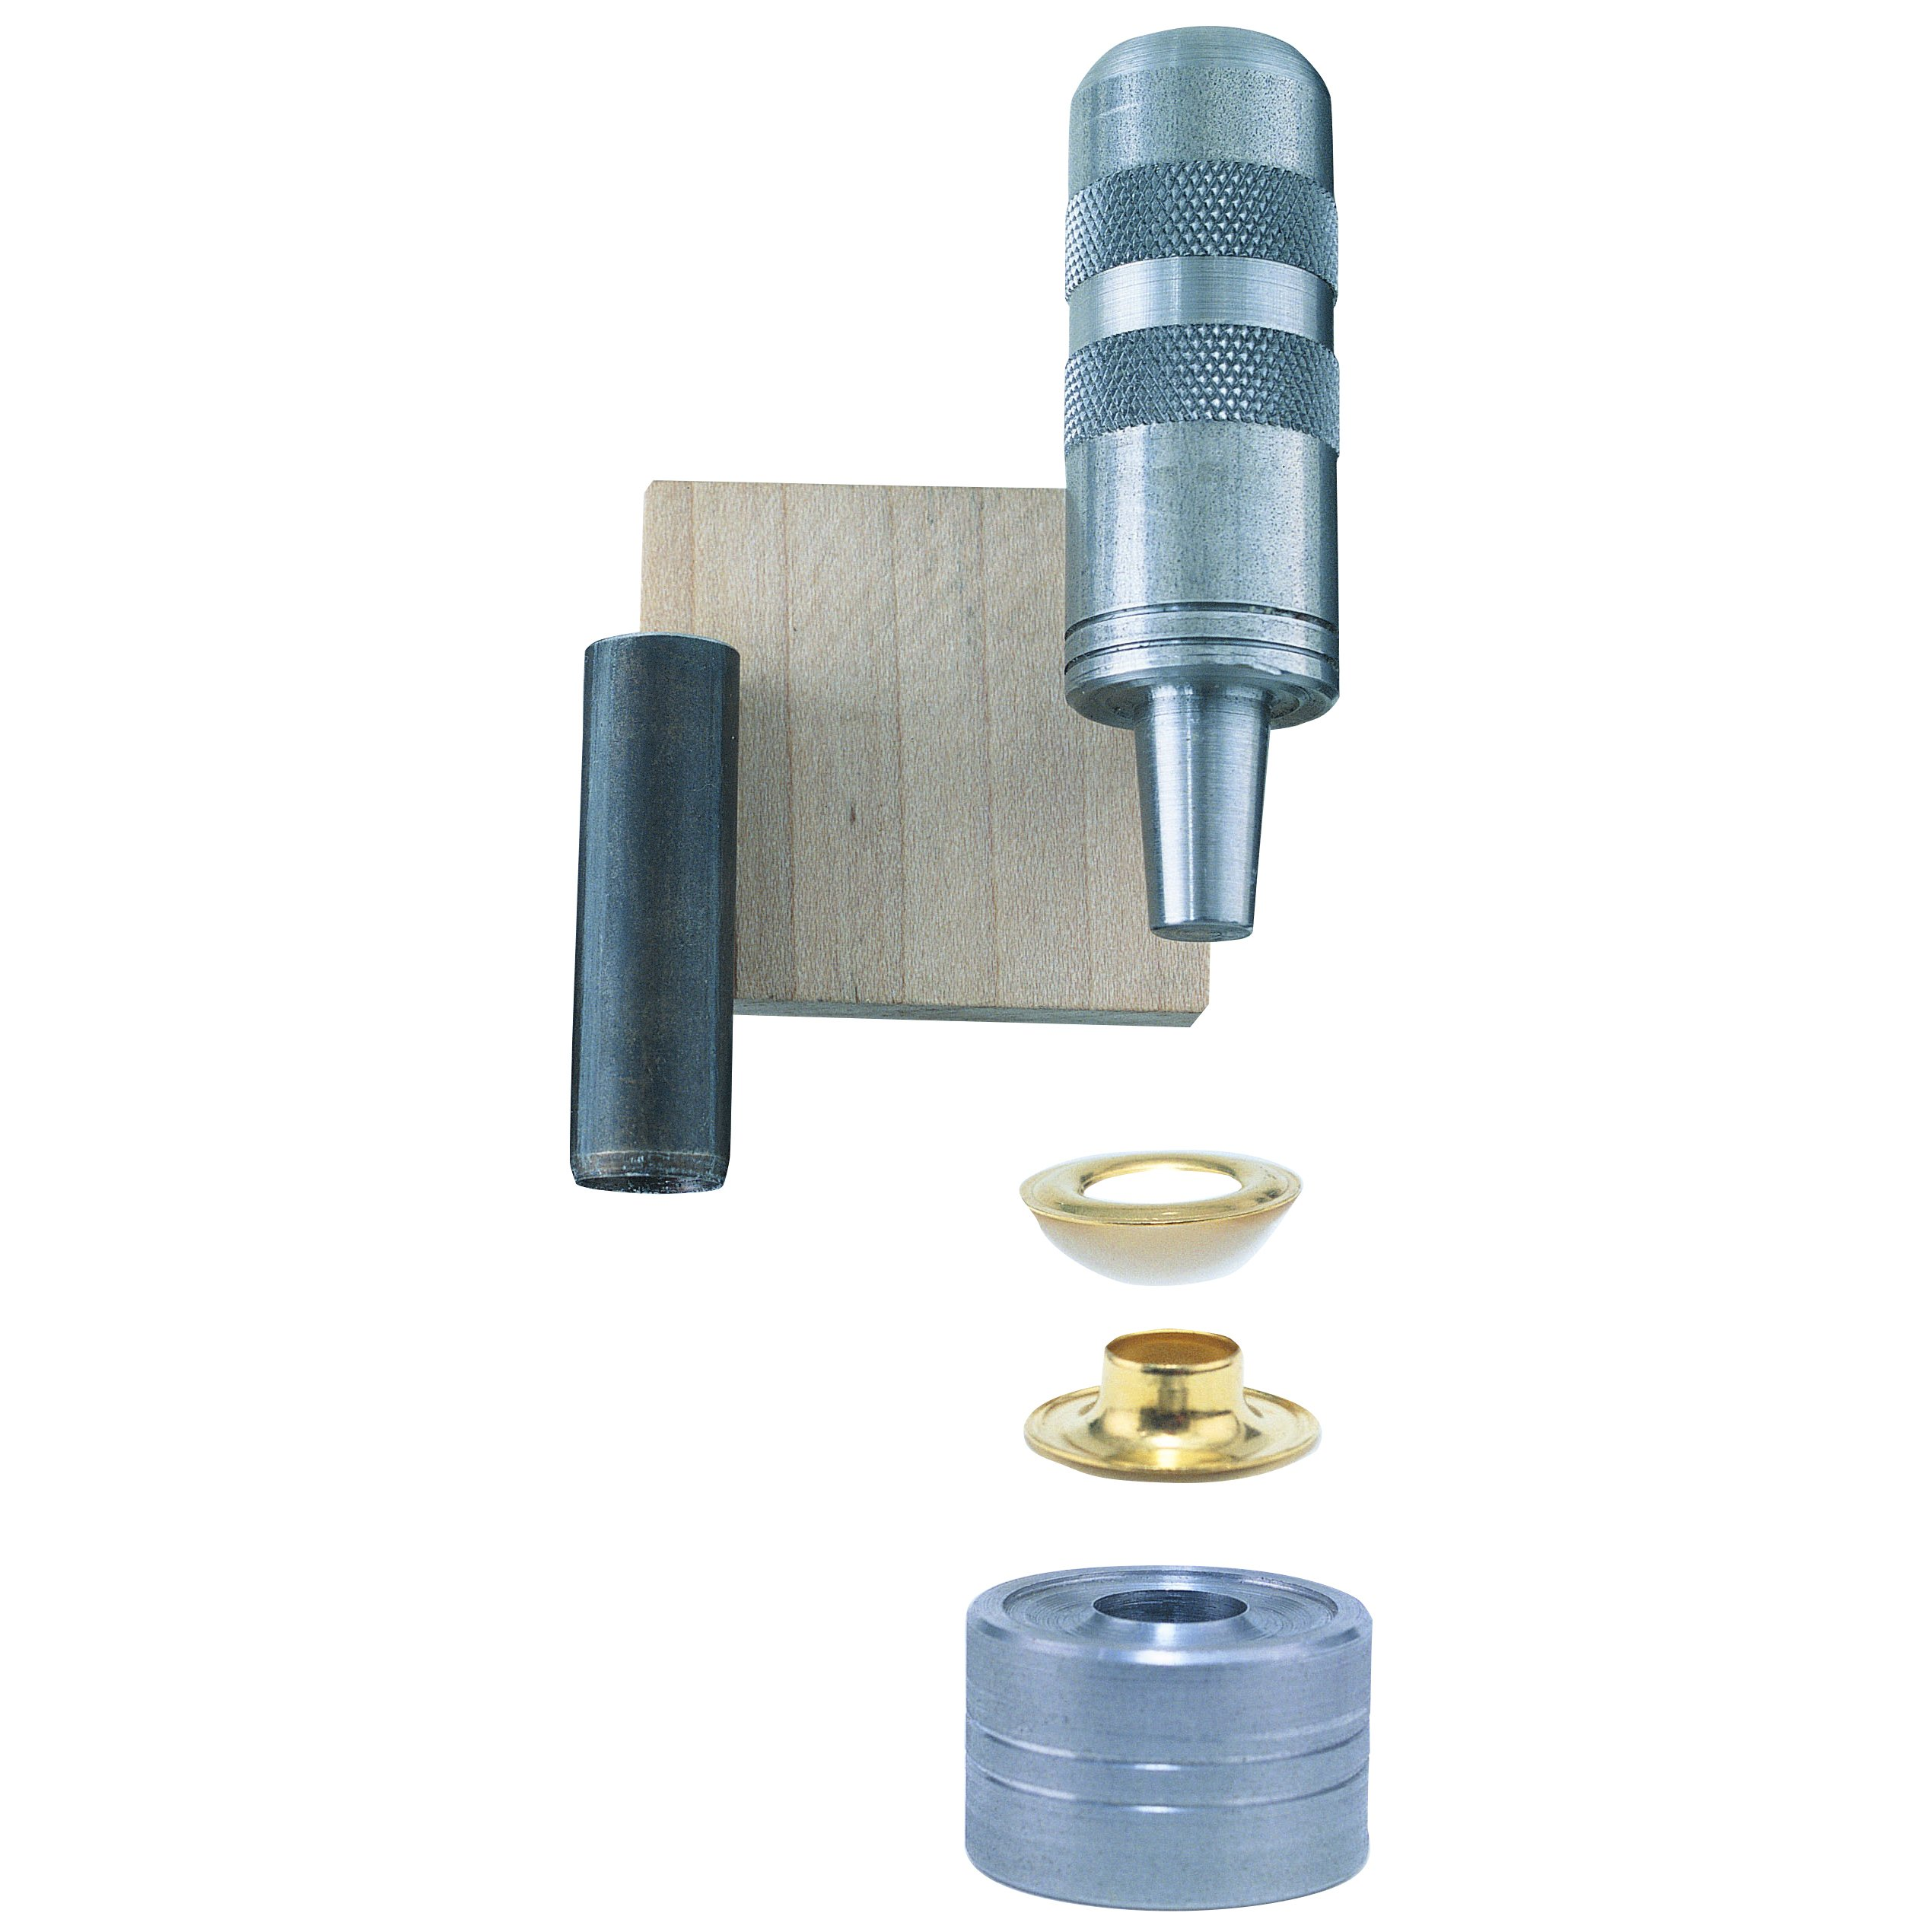 General Tools 71262 Grommet Kit with 24 Rustproof Solid Brass Grommets, 3/8 Inch by General Tools (Image #1)